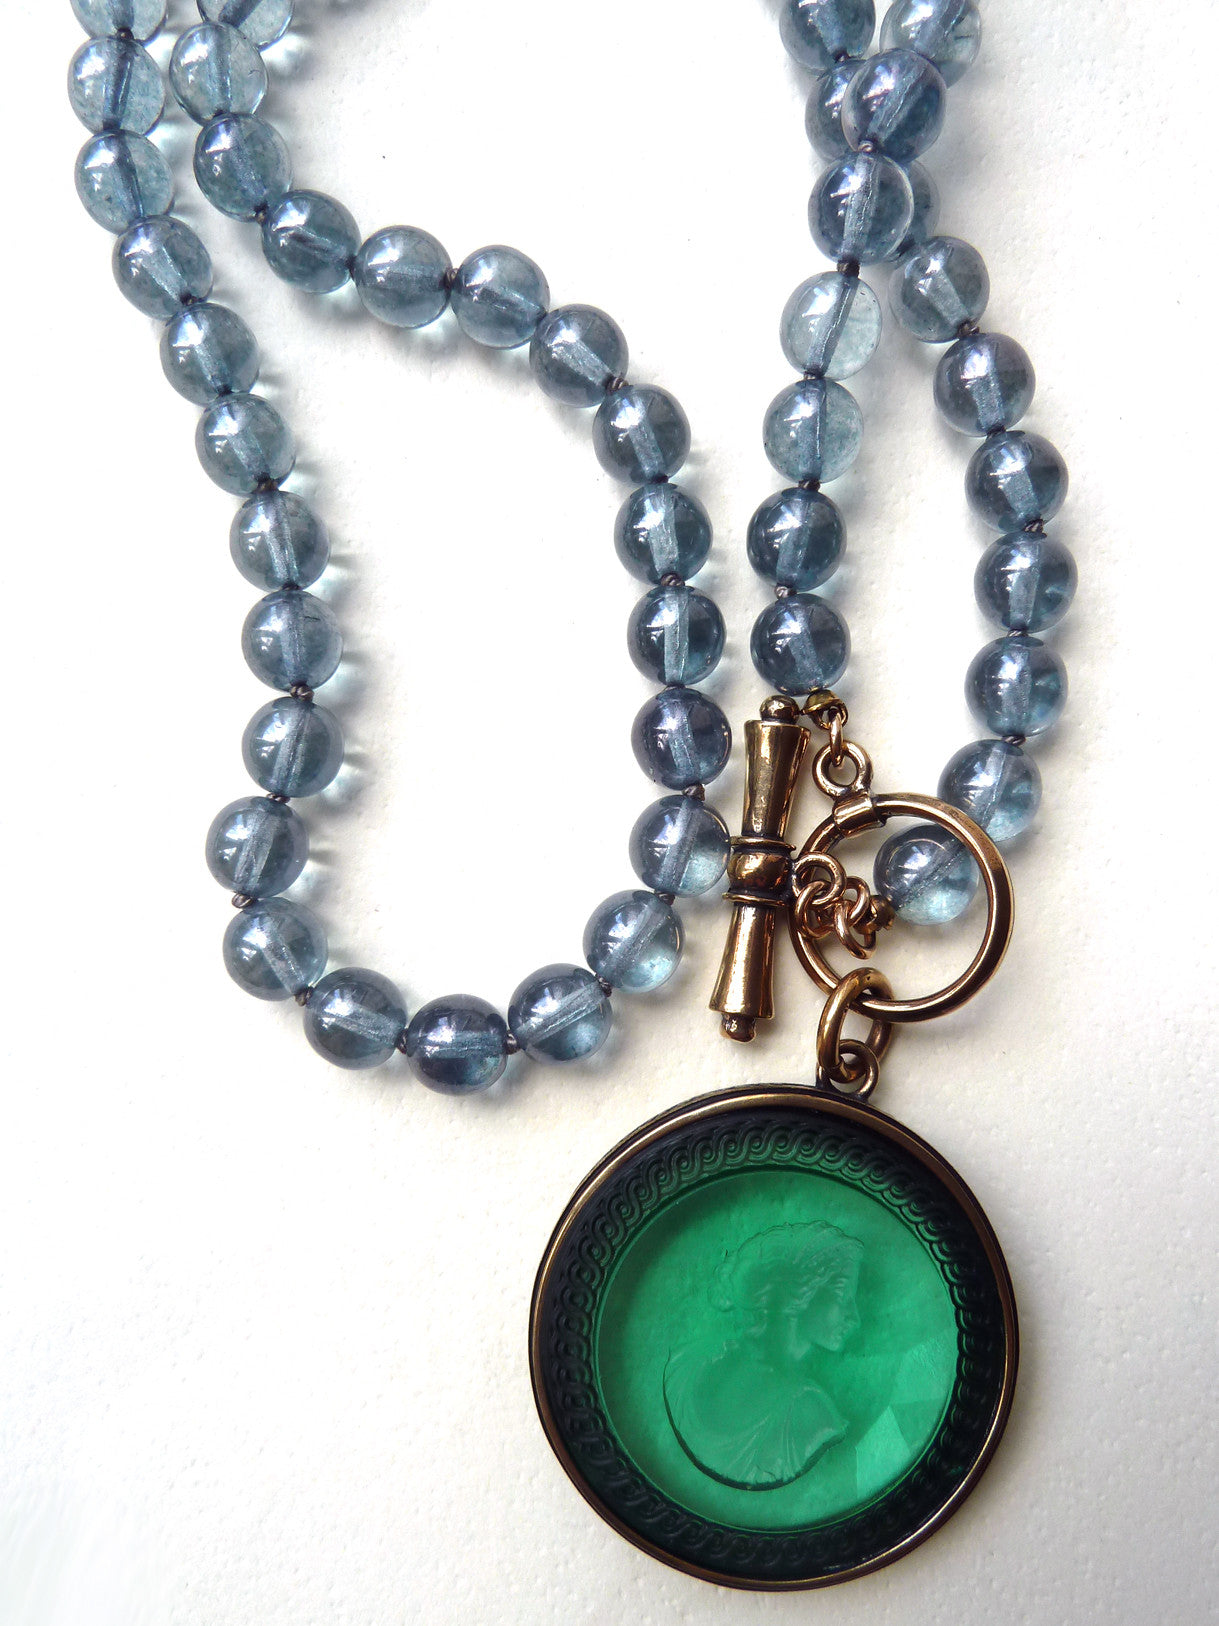 Necklace Intaglio On 30 Inch Glass Bead Periwinkle Bright Green